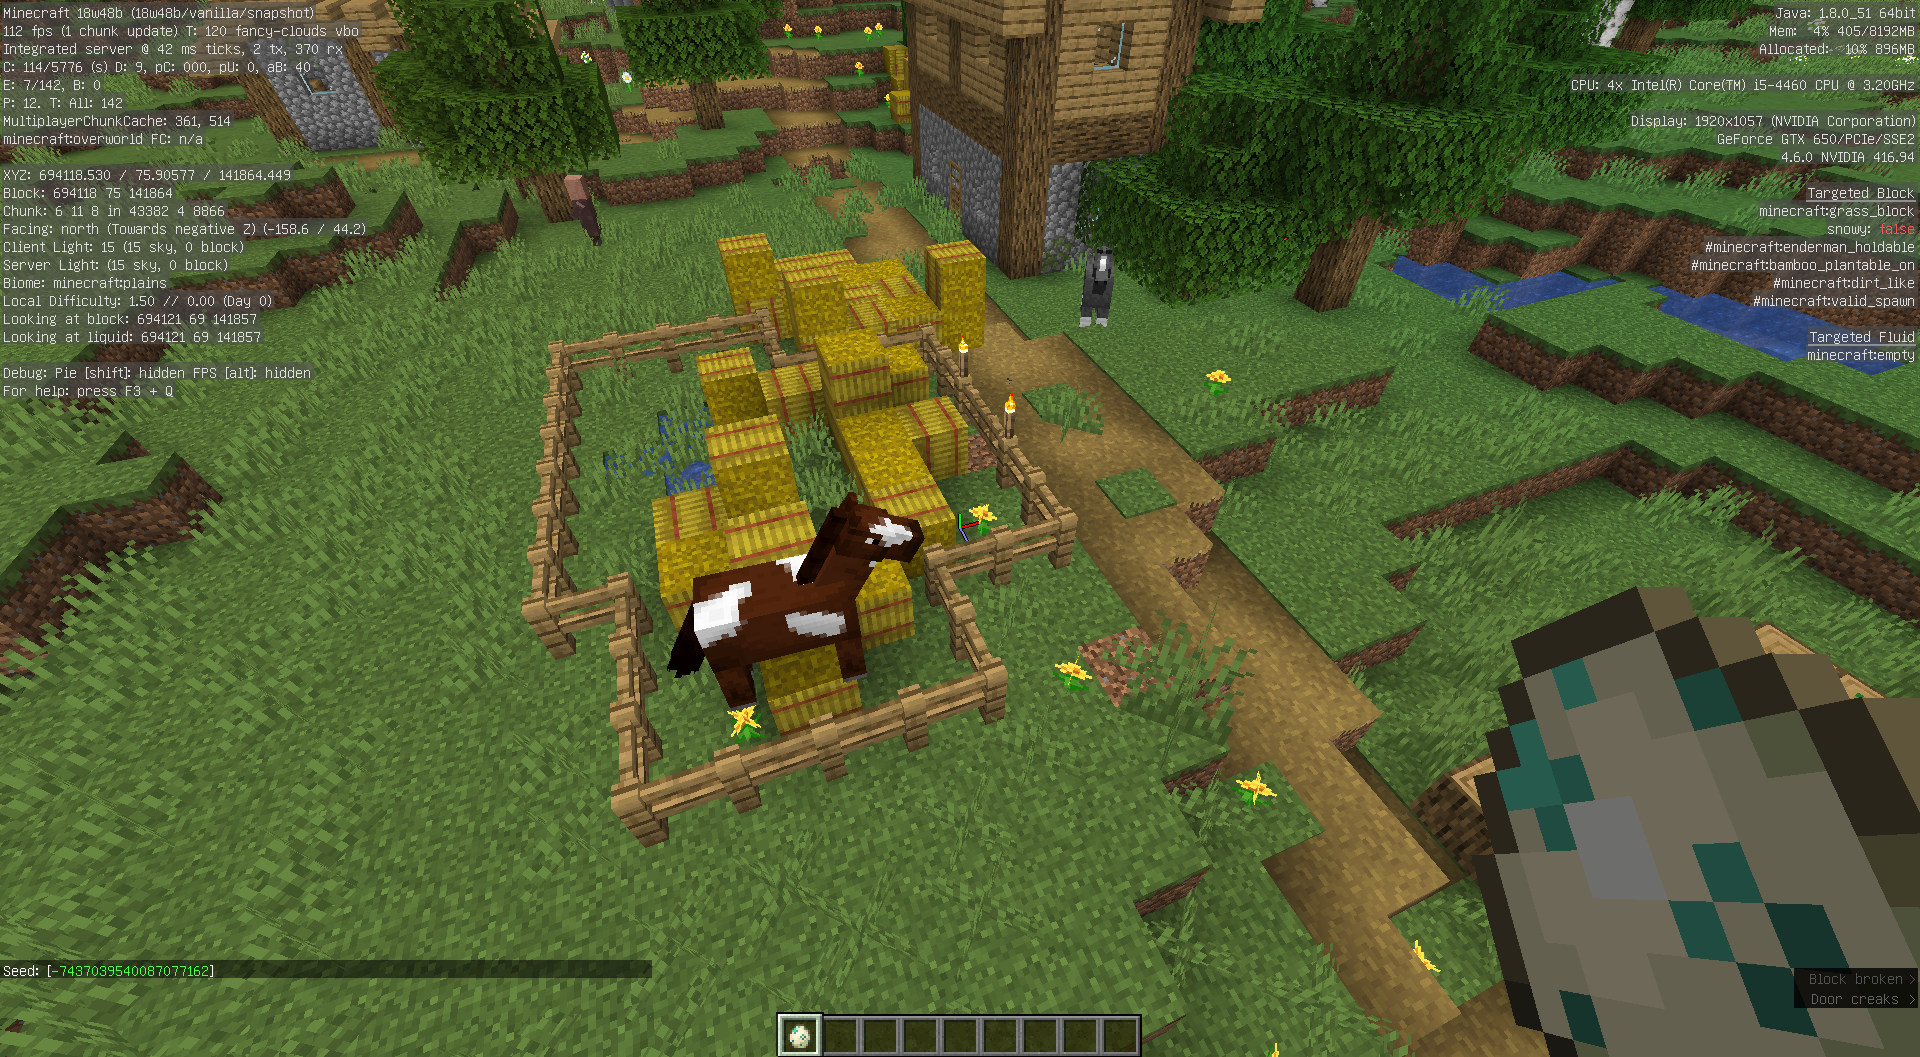 MC-140398] Hay bales, light posts and trees can generate